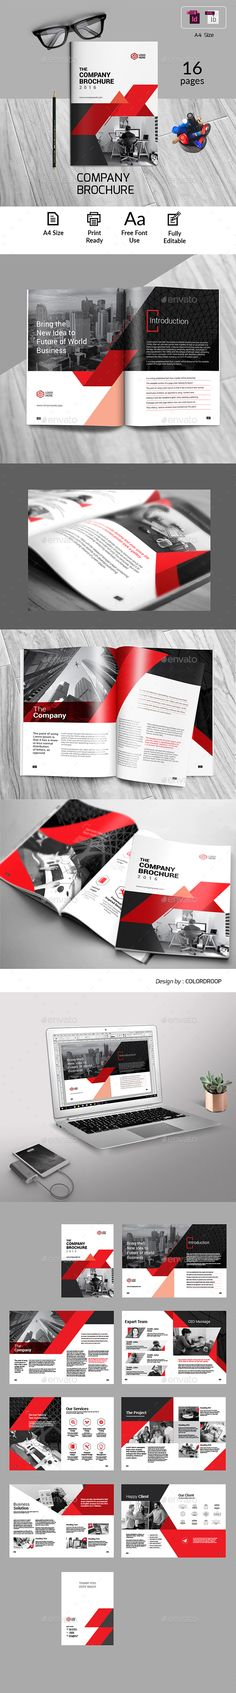 Comapny Brochure by colordroop Letter HeadBusiness Brochure Template. This layout is suitable for any project purpose. Very easy to use and customise.Features:A4